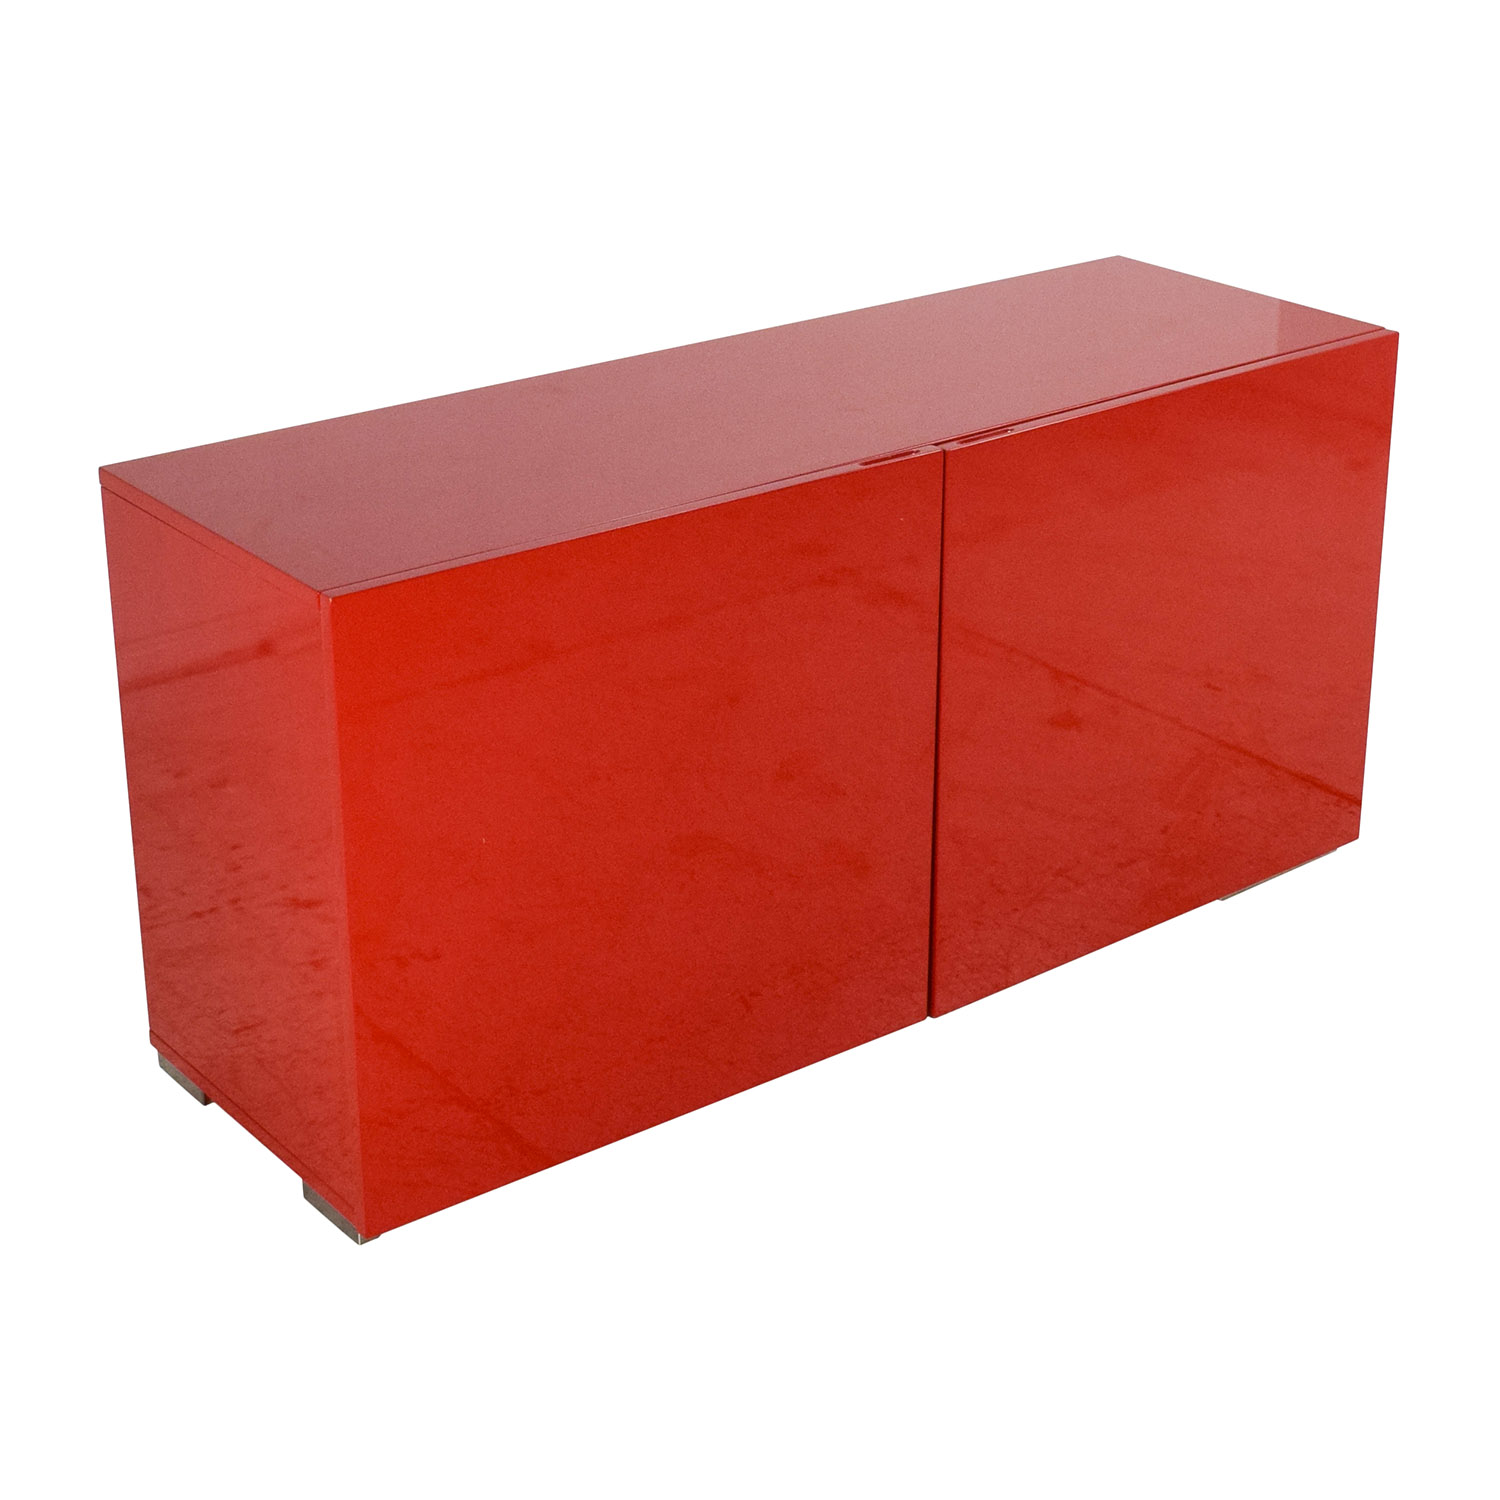 69 off cb2 cb2 fuel credenza in red storage for Sideboard petrol